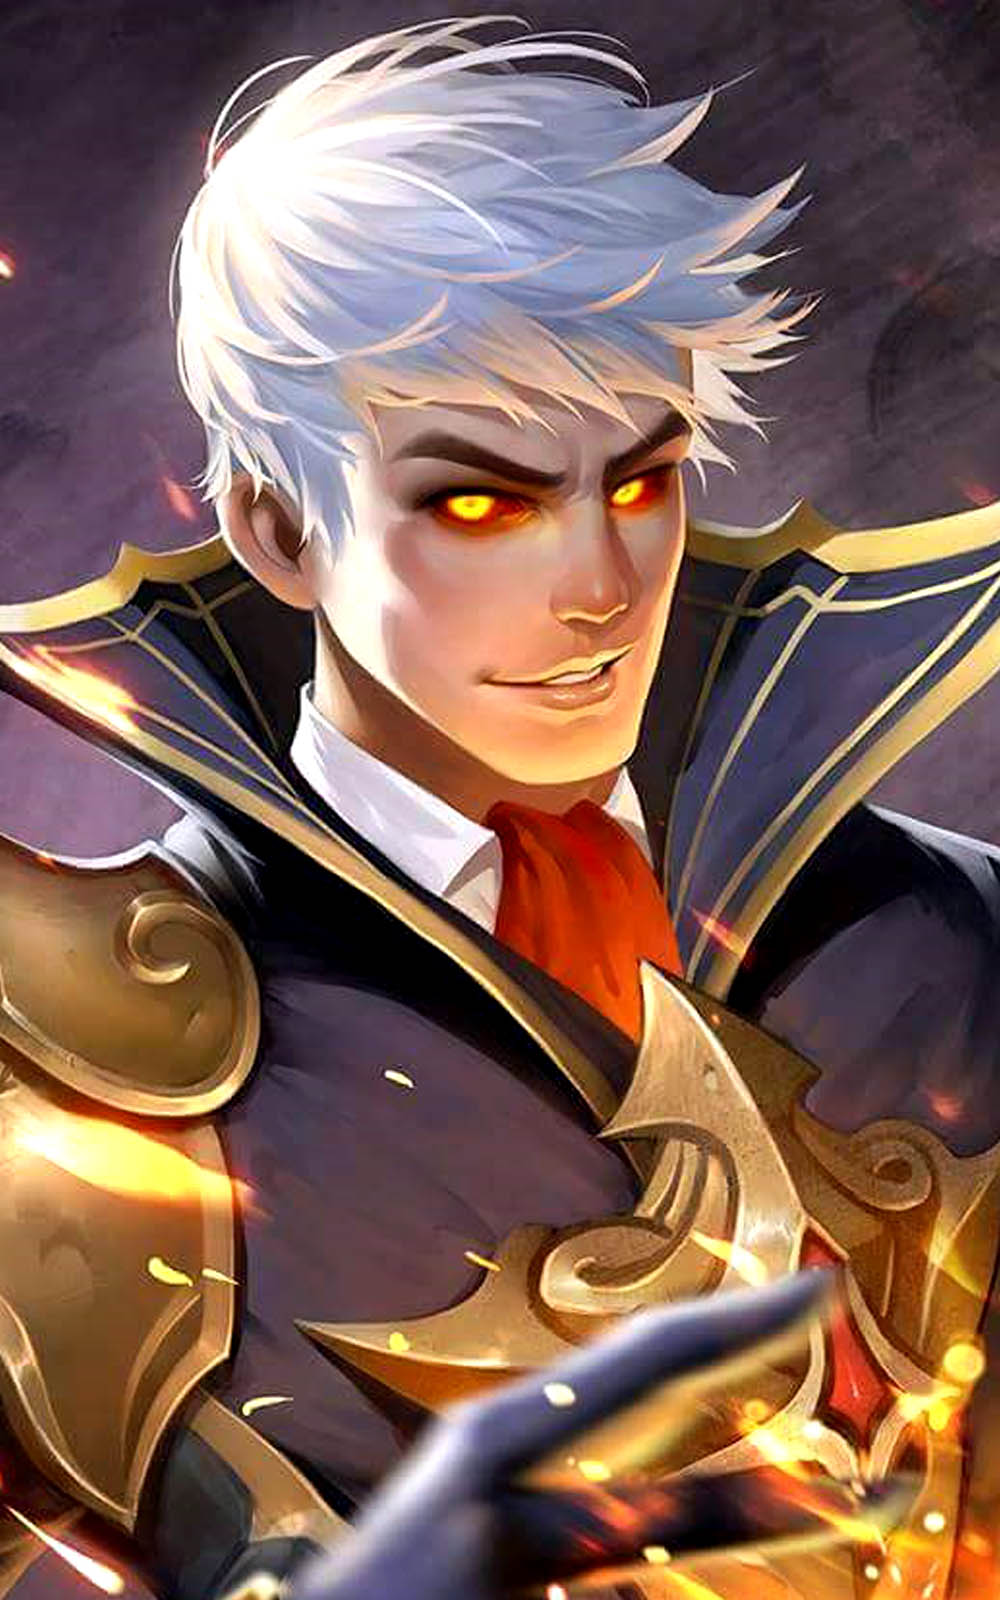 Alucard Child Of The Fall Wallpaper Download The Fiery Inferno Alucard Mobile Legends Free